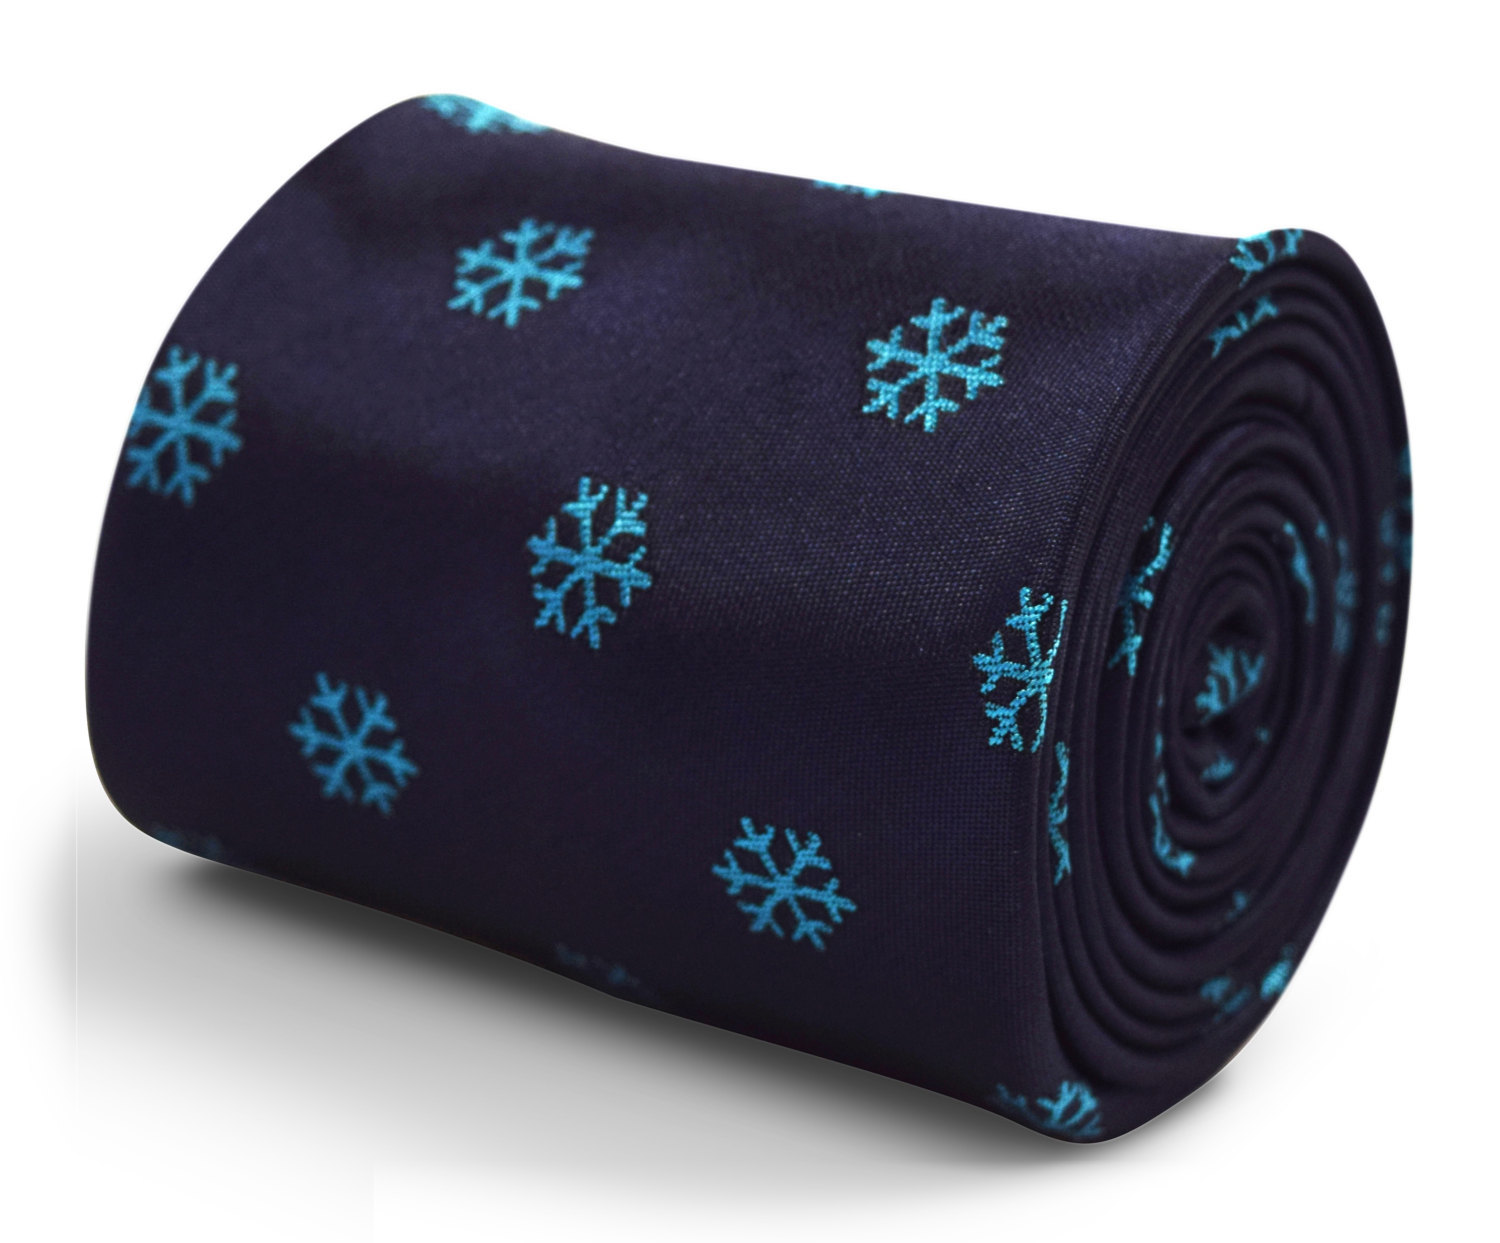 navy blue tie with snowflake embroidered design with signature floral design to